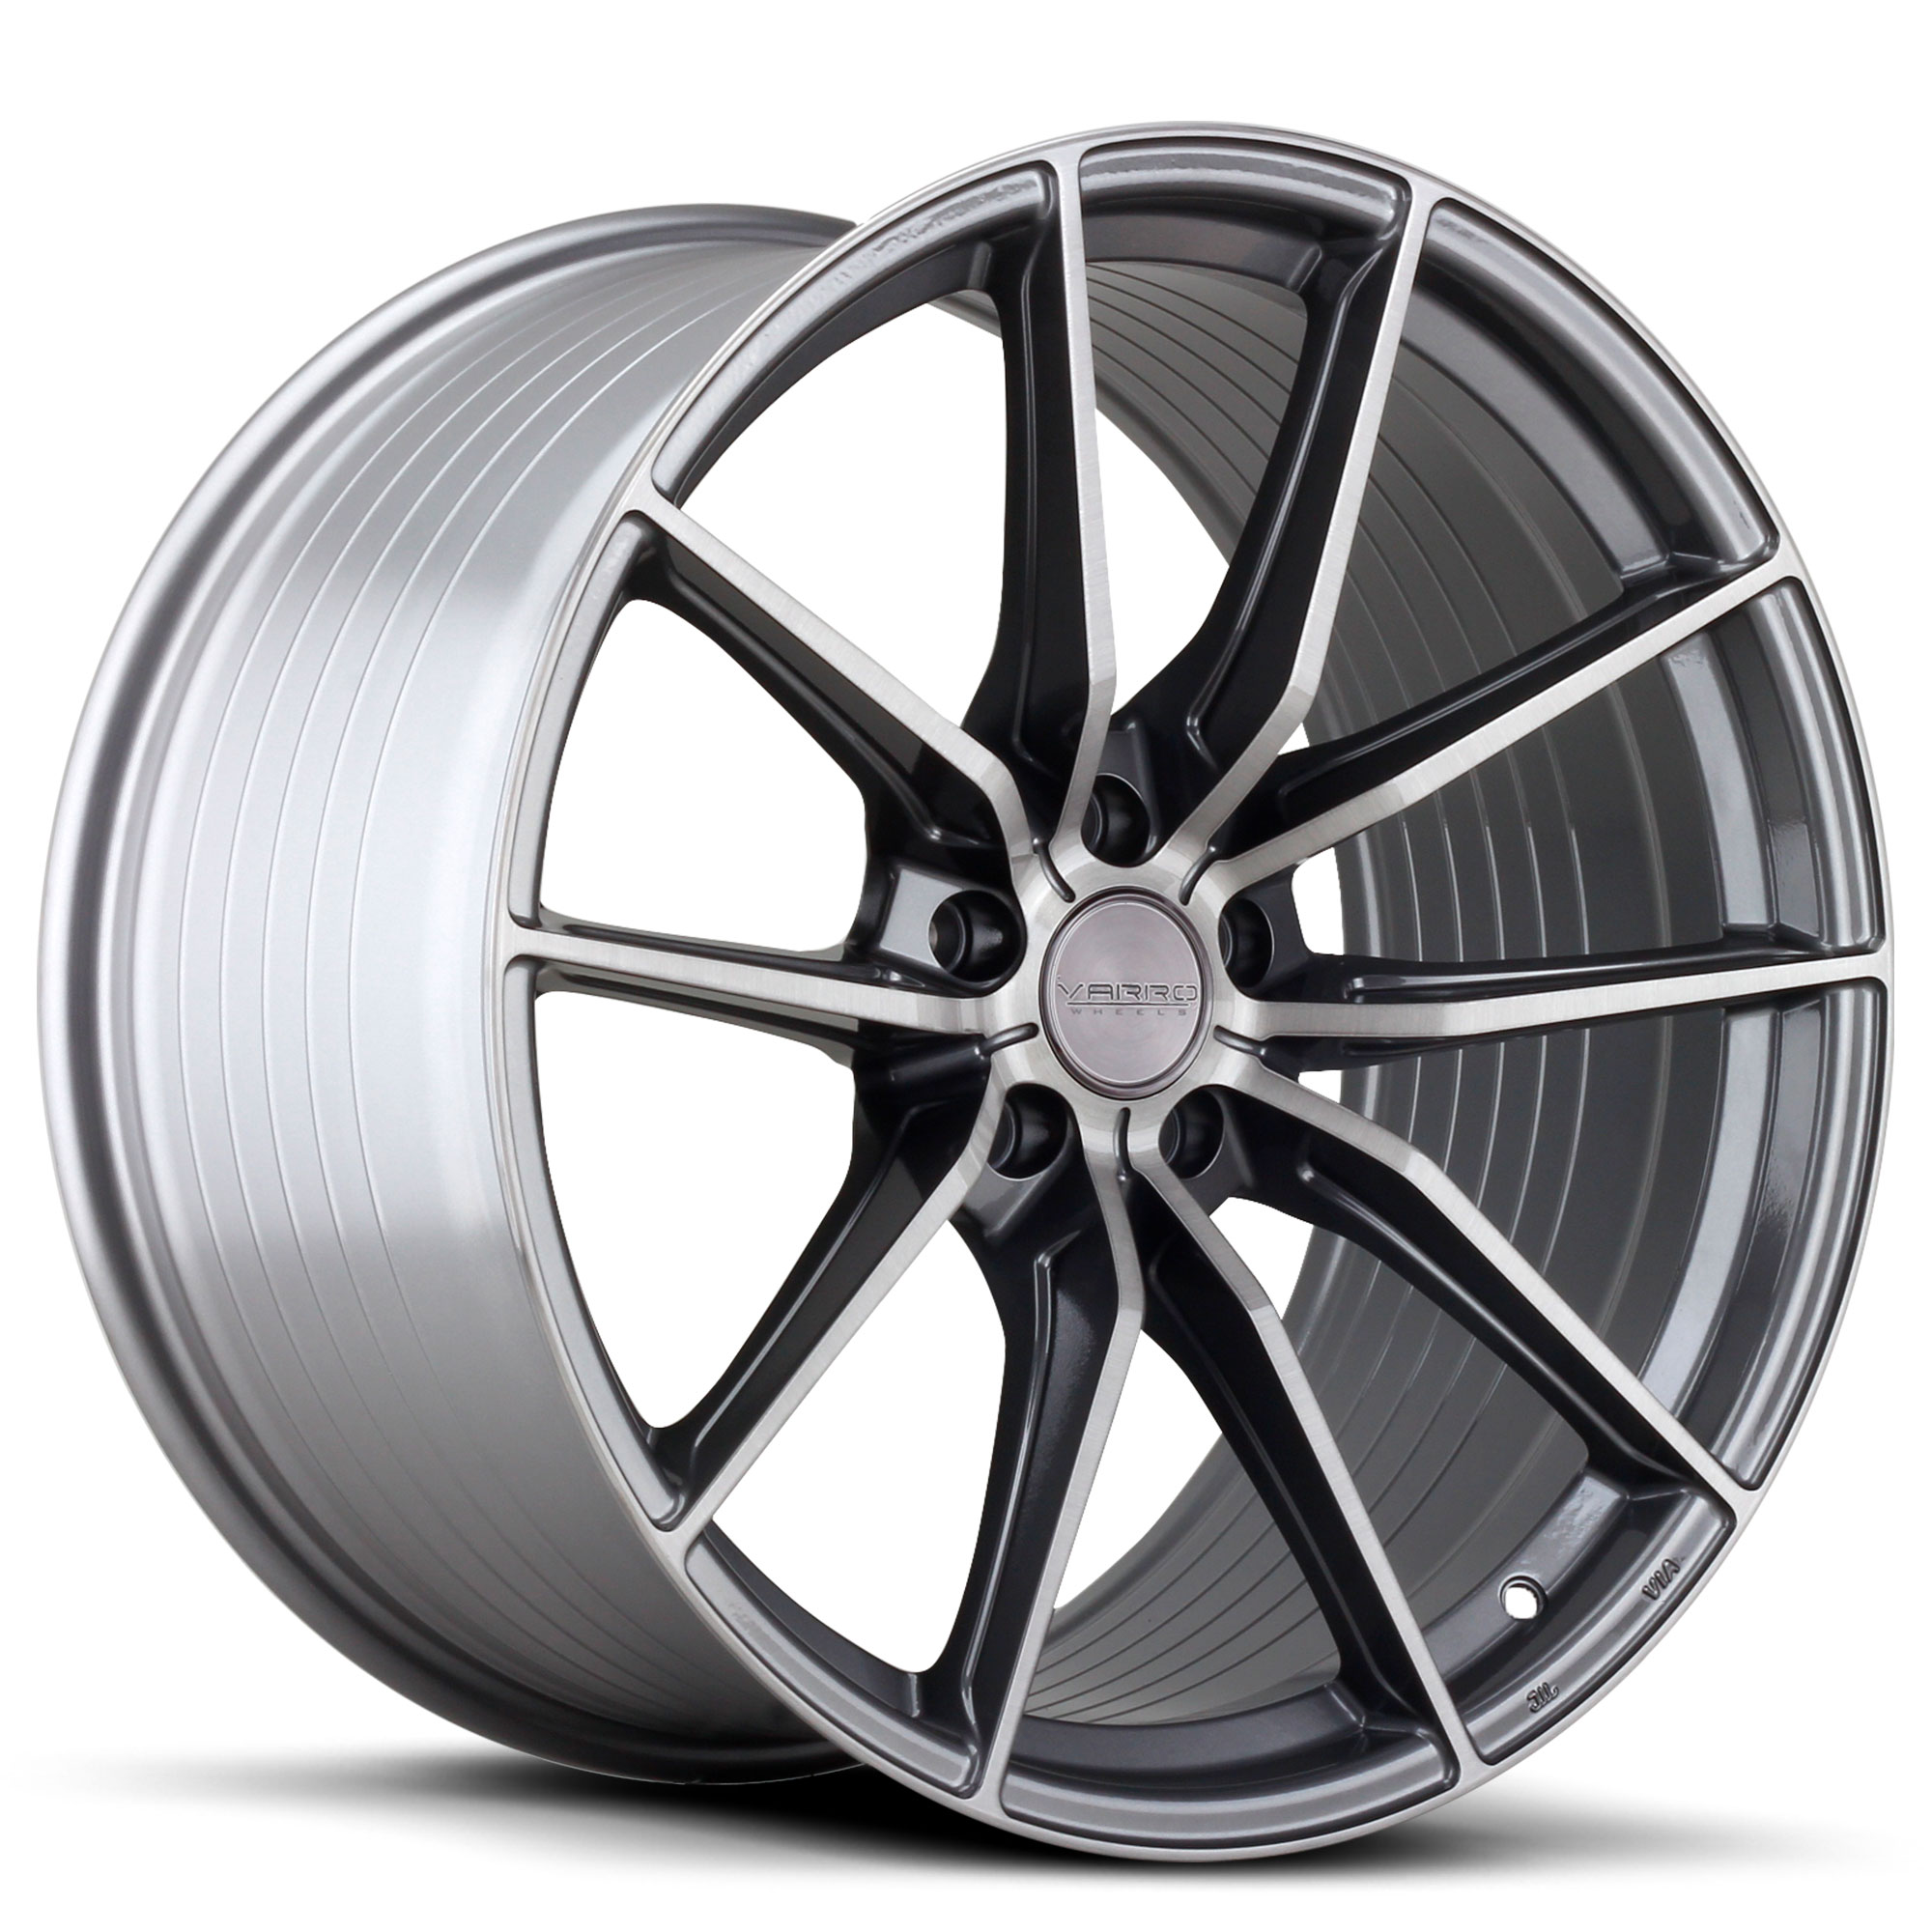 Varro VD25X Flow Form Concave Staggered Wheels